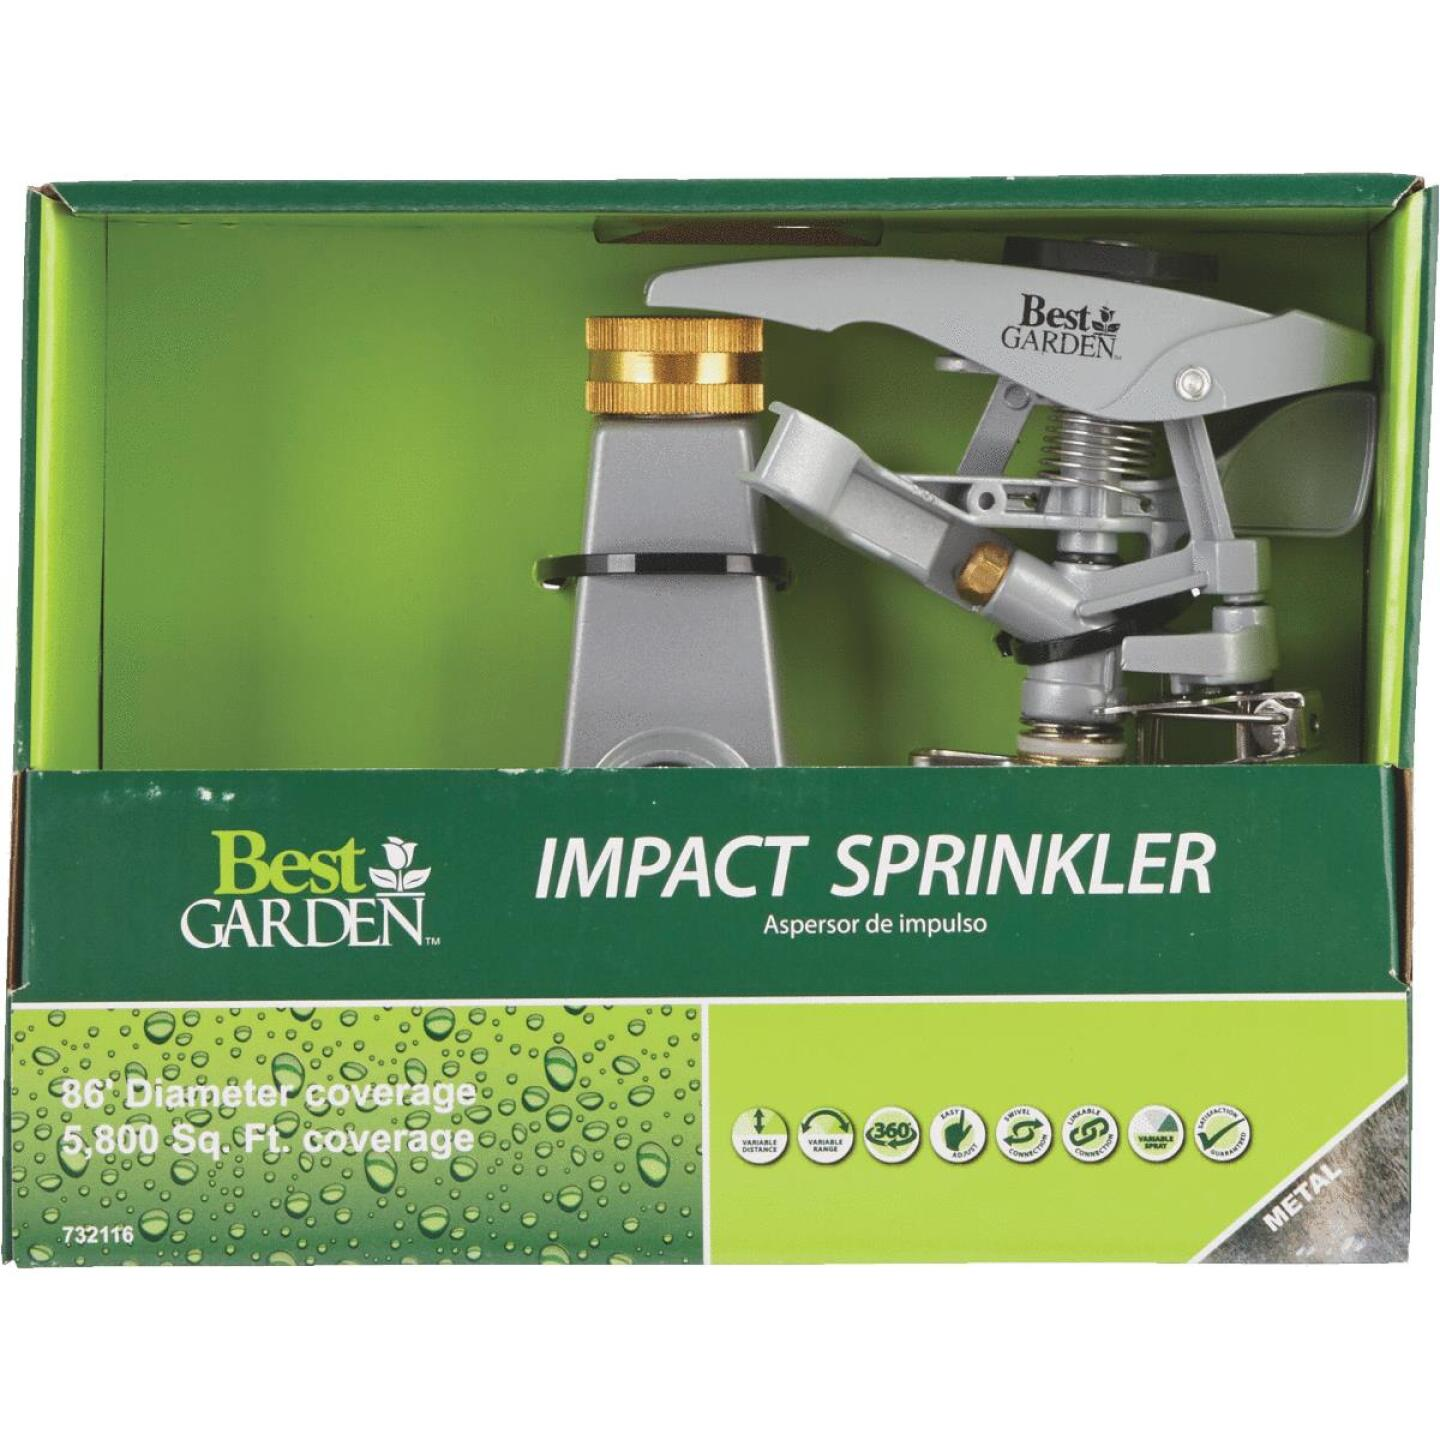 Best Garden Metal 5800 Sq. Ft. Wheeled Impulse Sprinkler Image 2